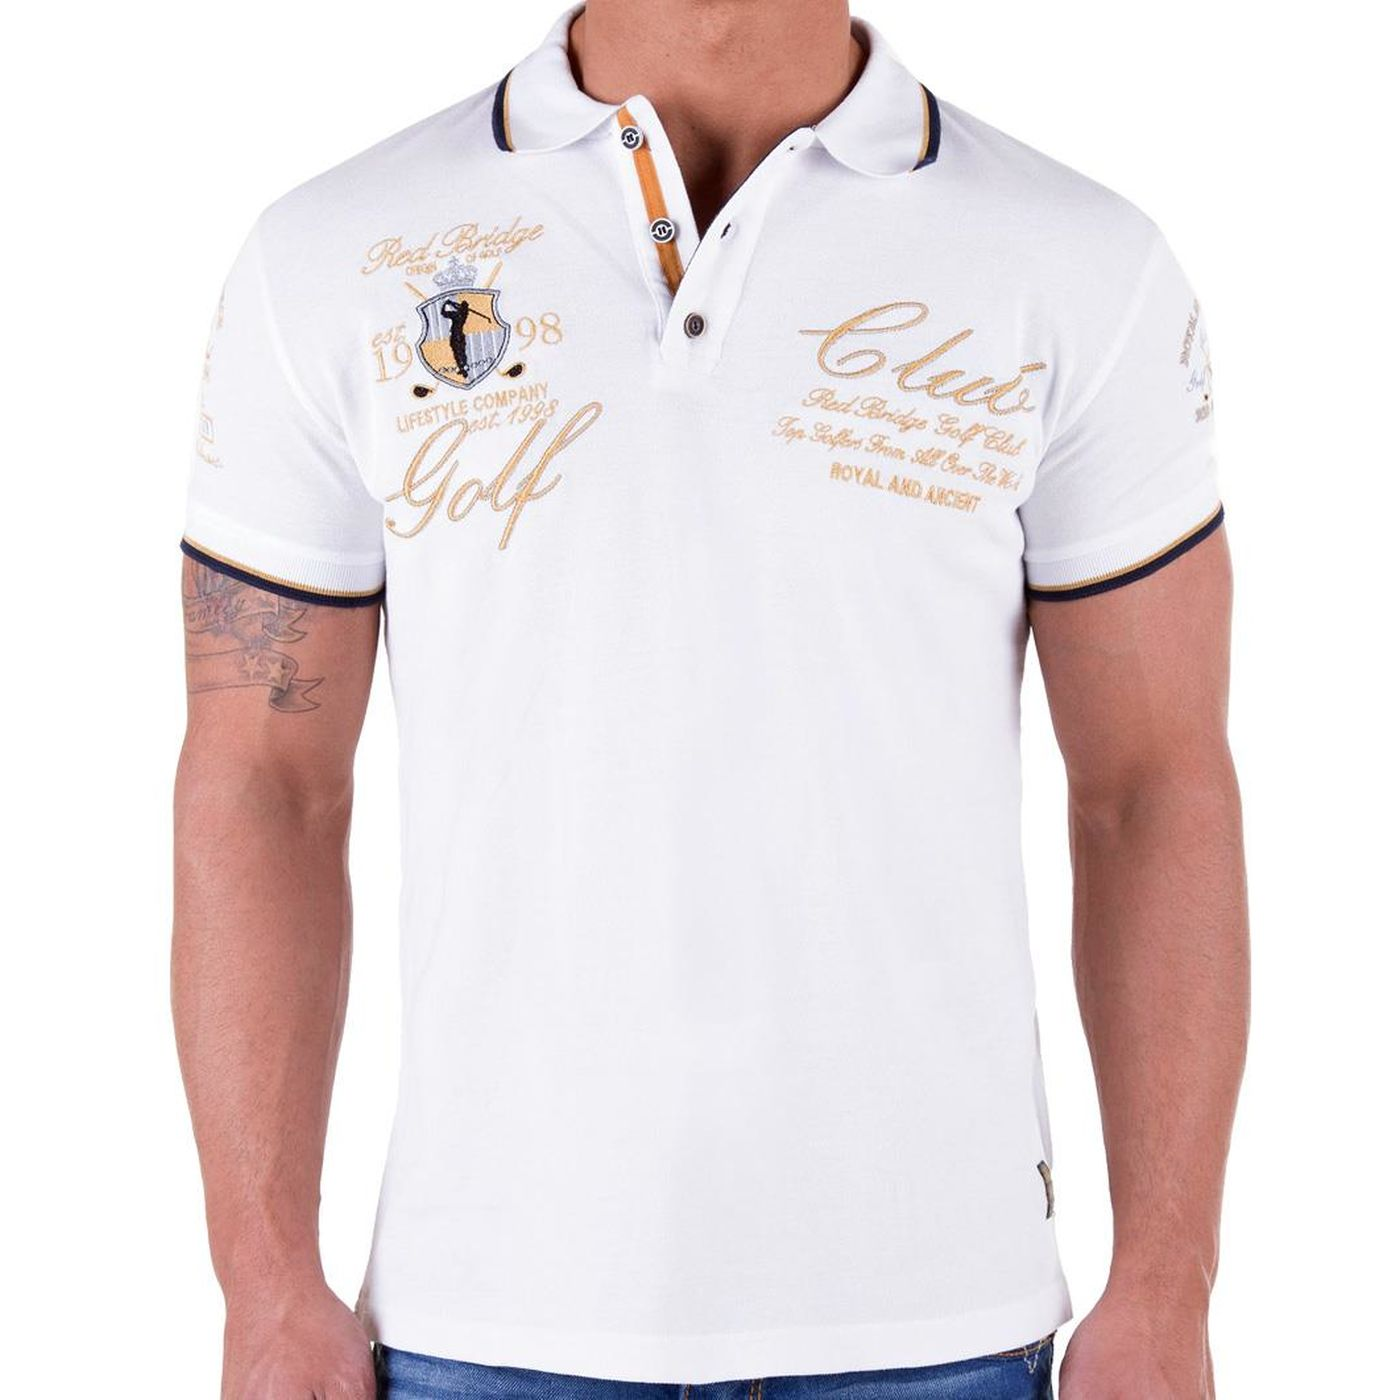 red bridge herren golf club poloshirt t shirt weiss r41209. Black Bedroom Furniture Sets. Home Design Ideas